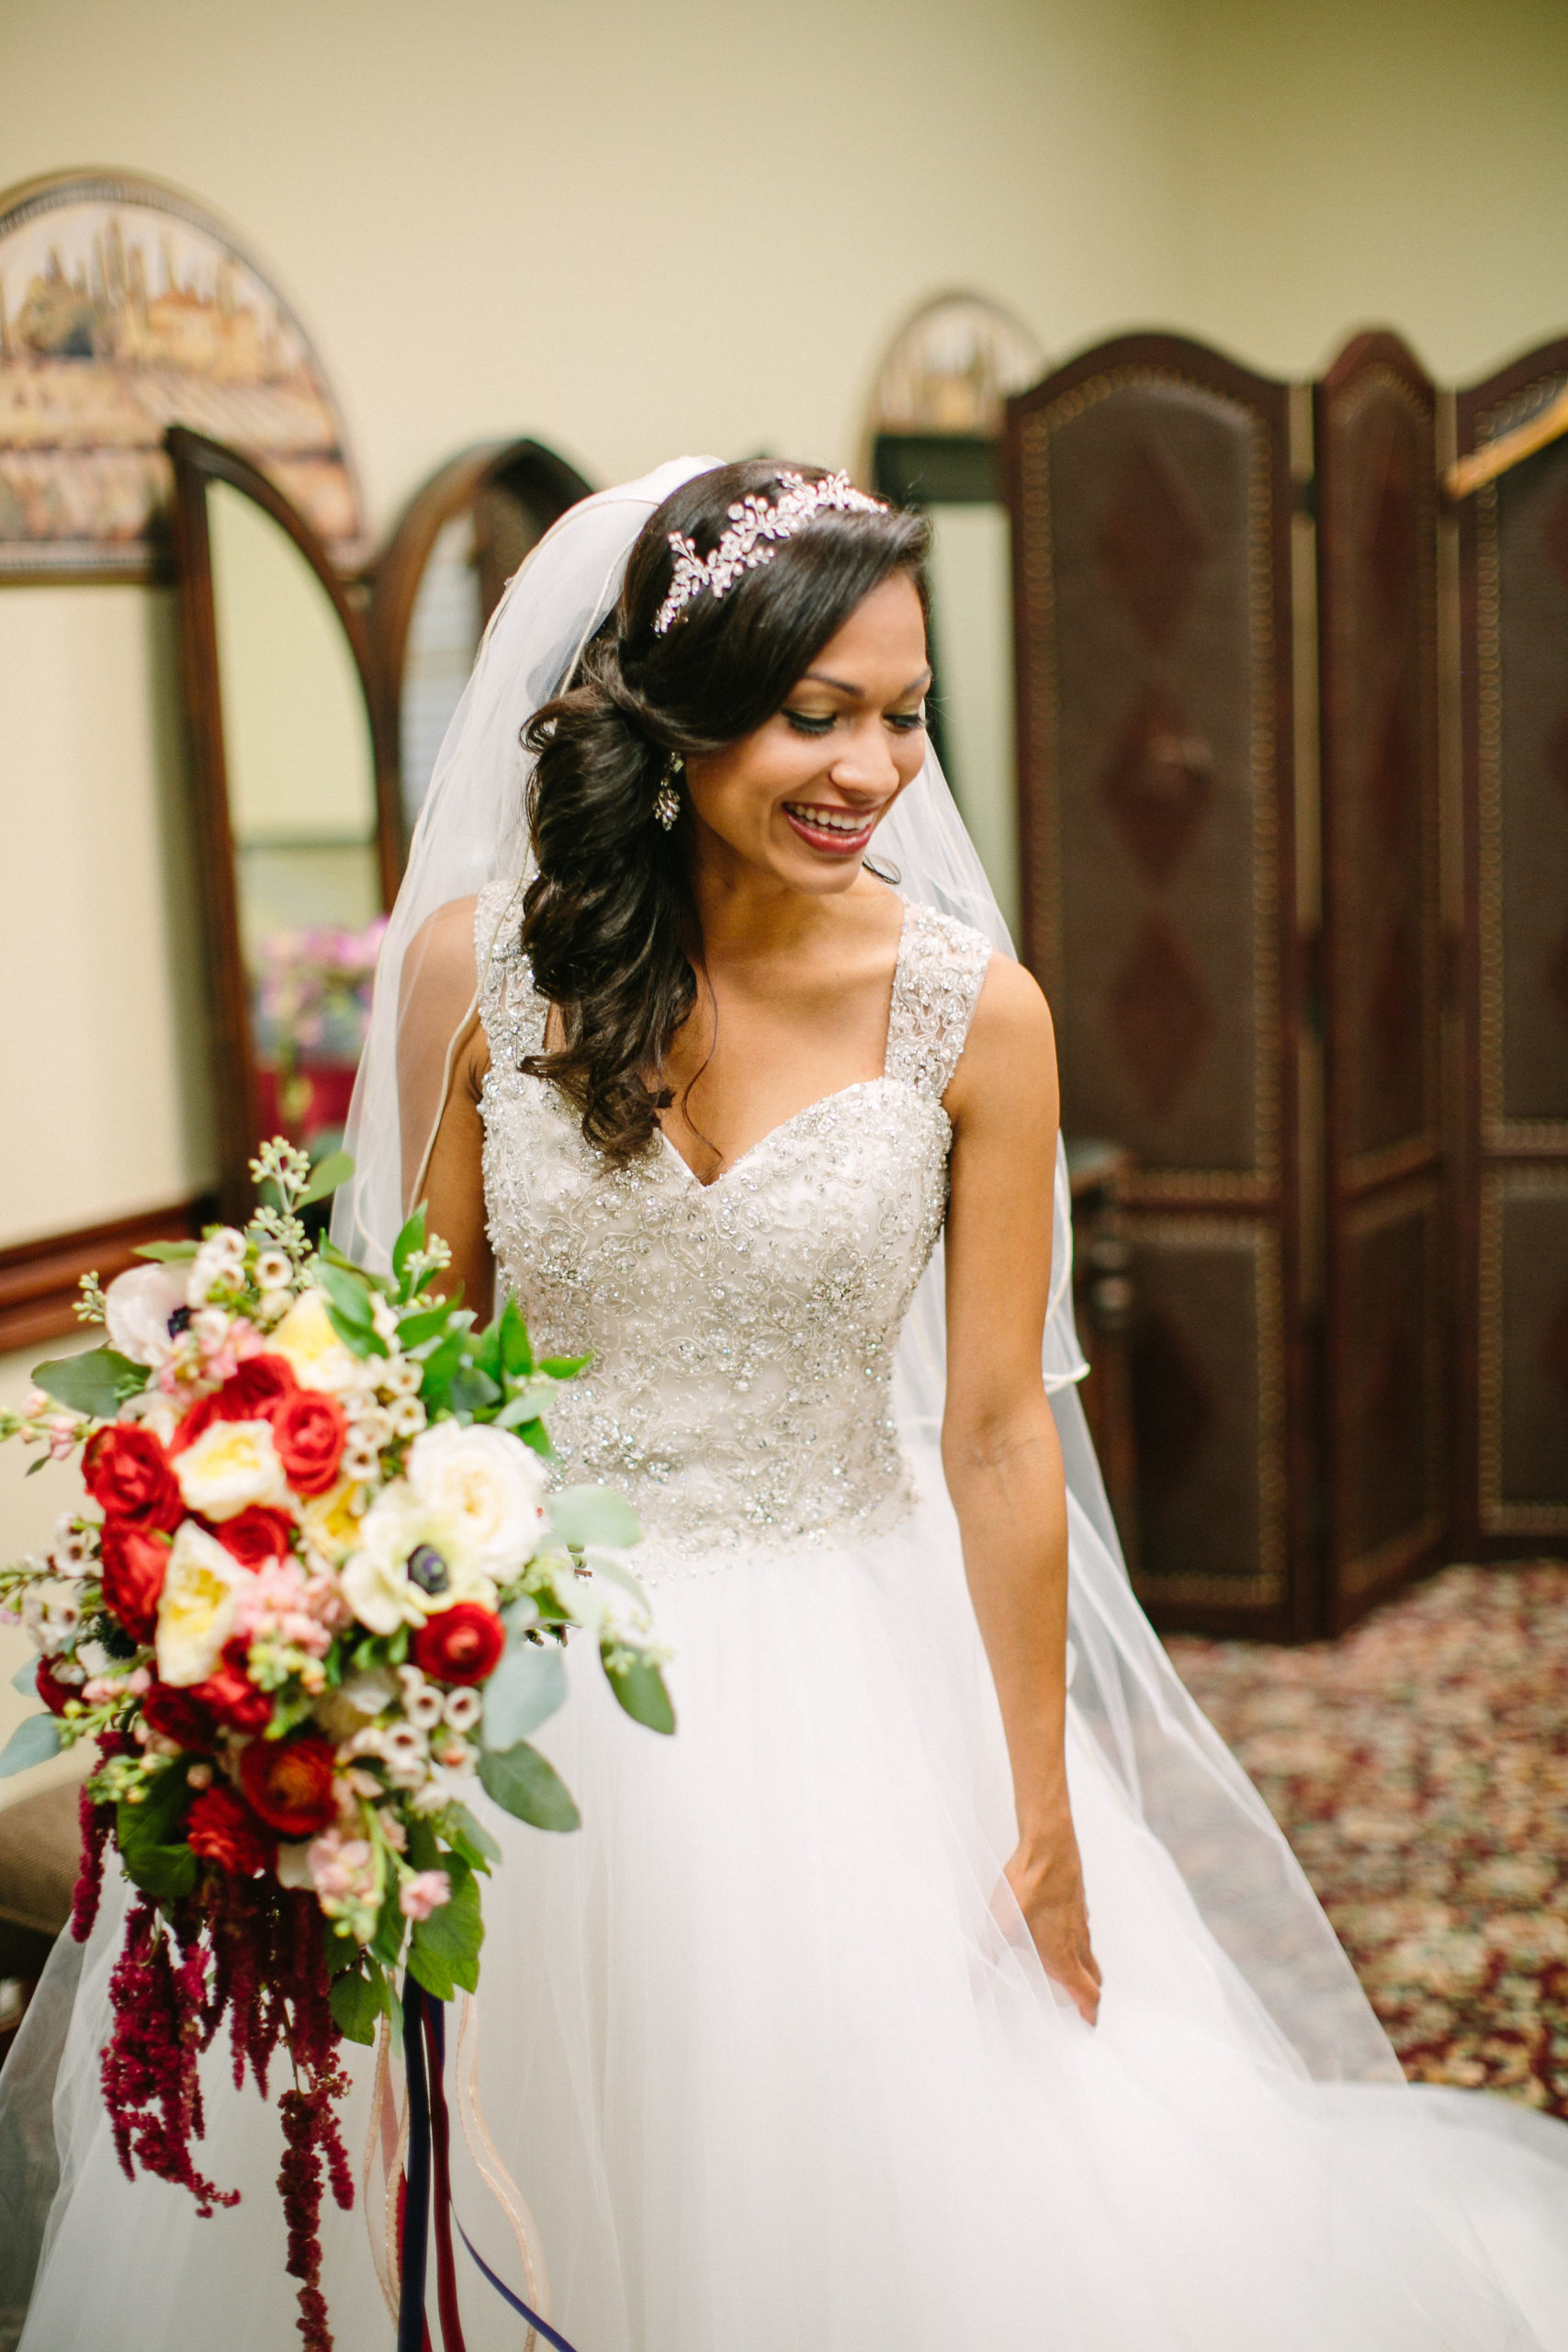 Bride smiling in wedding dress with side swept bridal hair style